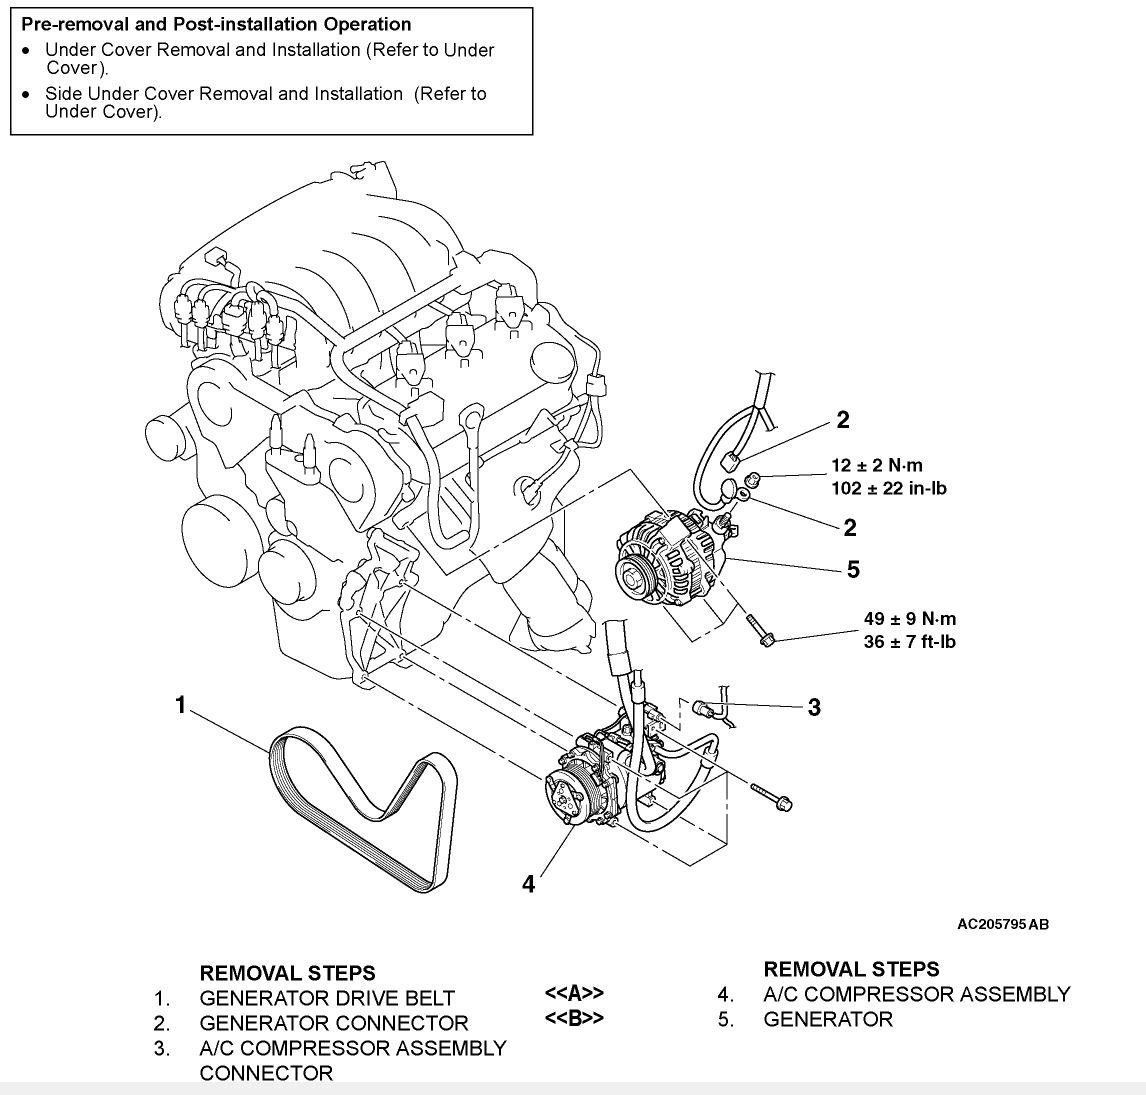 2004 Mitsubishi Endeavor Starter Location Wiring Diagram Change Alternator Just To Know The Steps 1146x1095